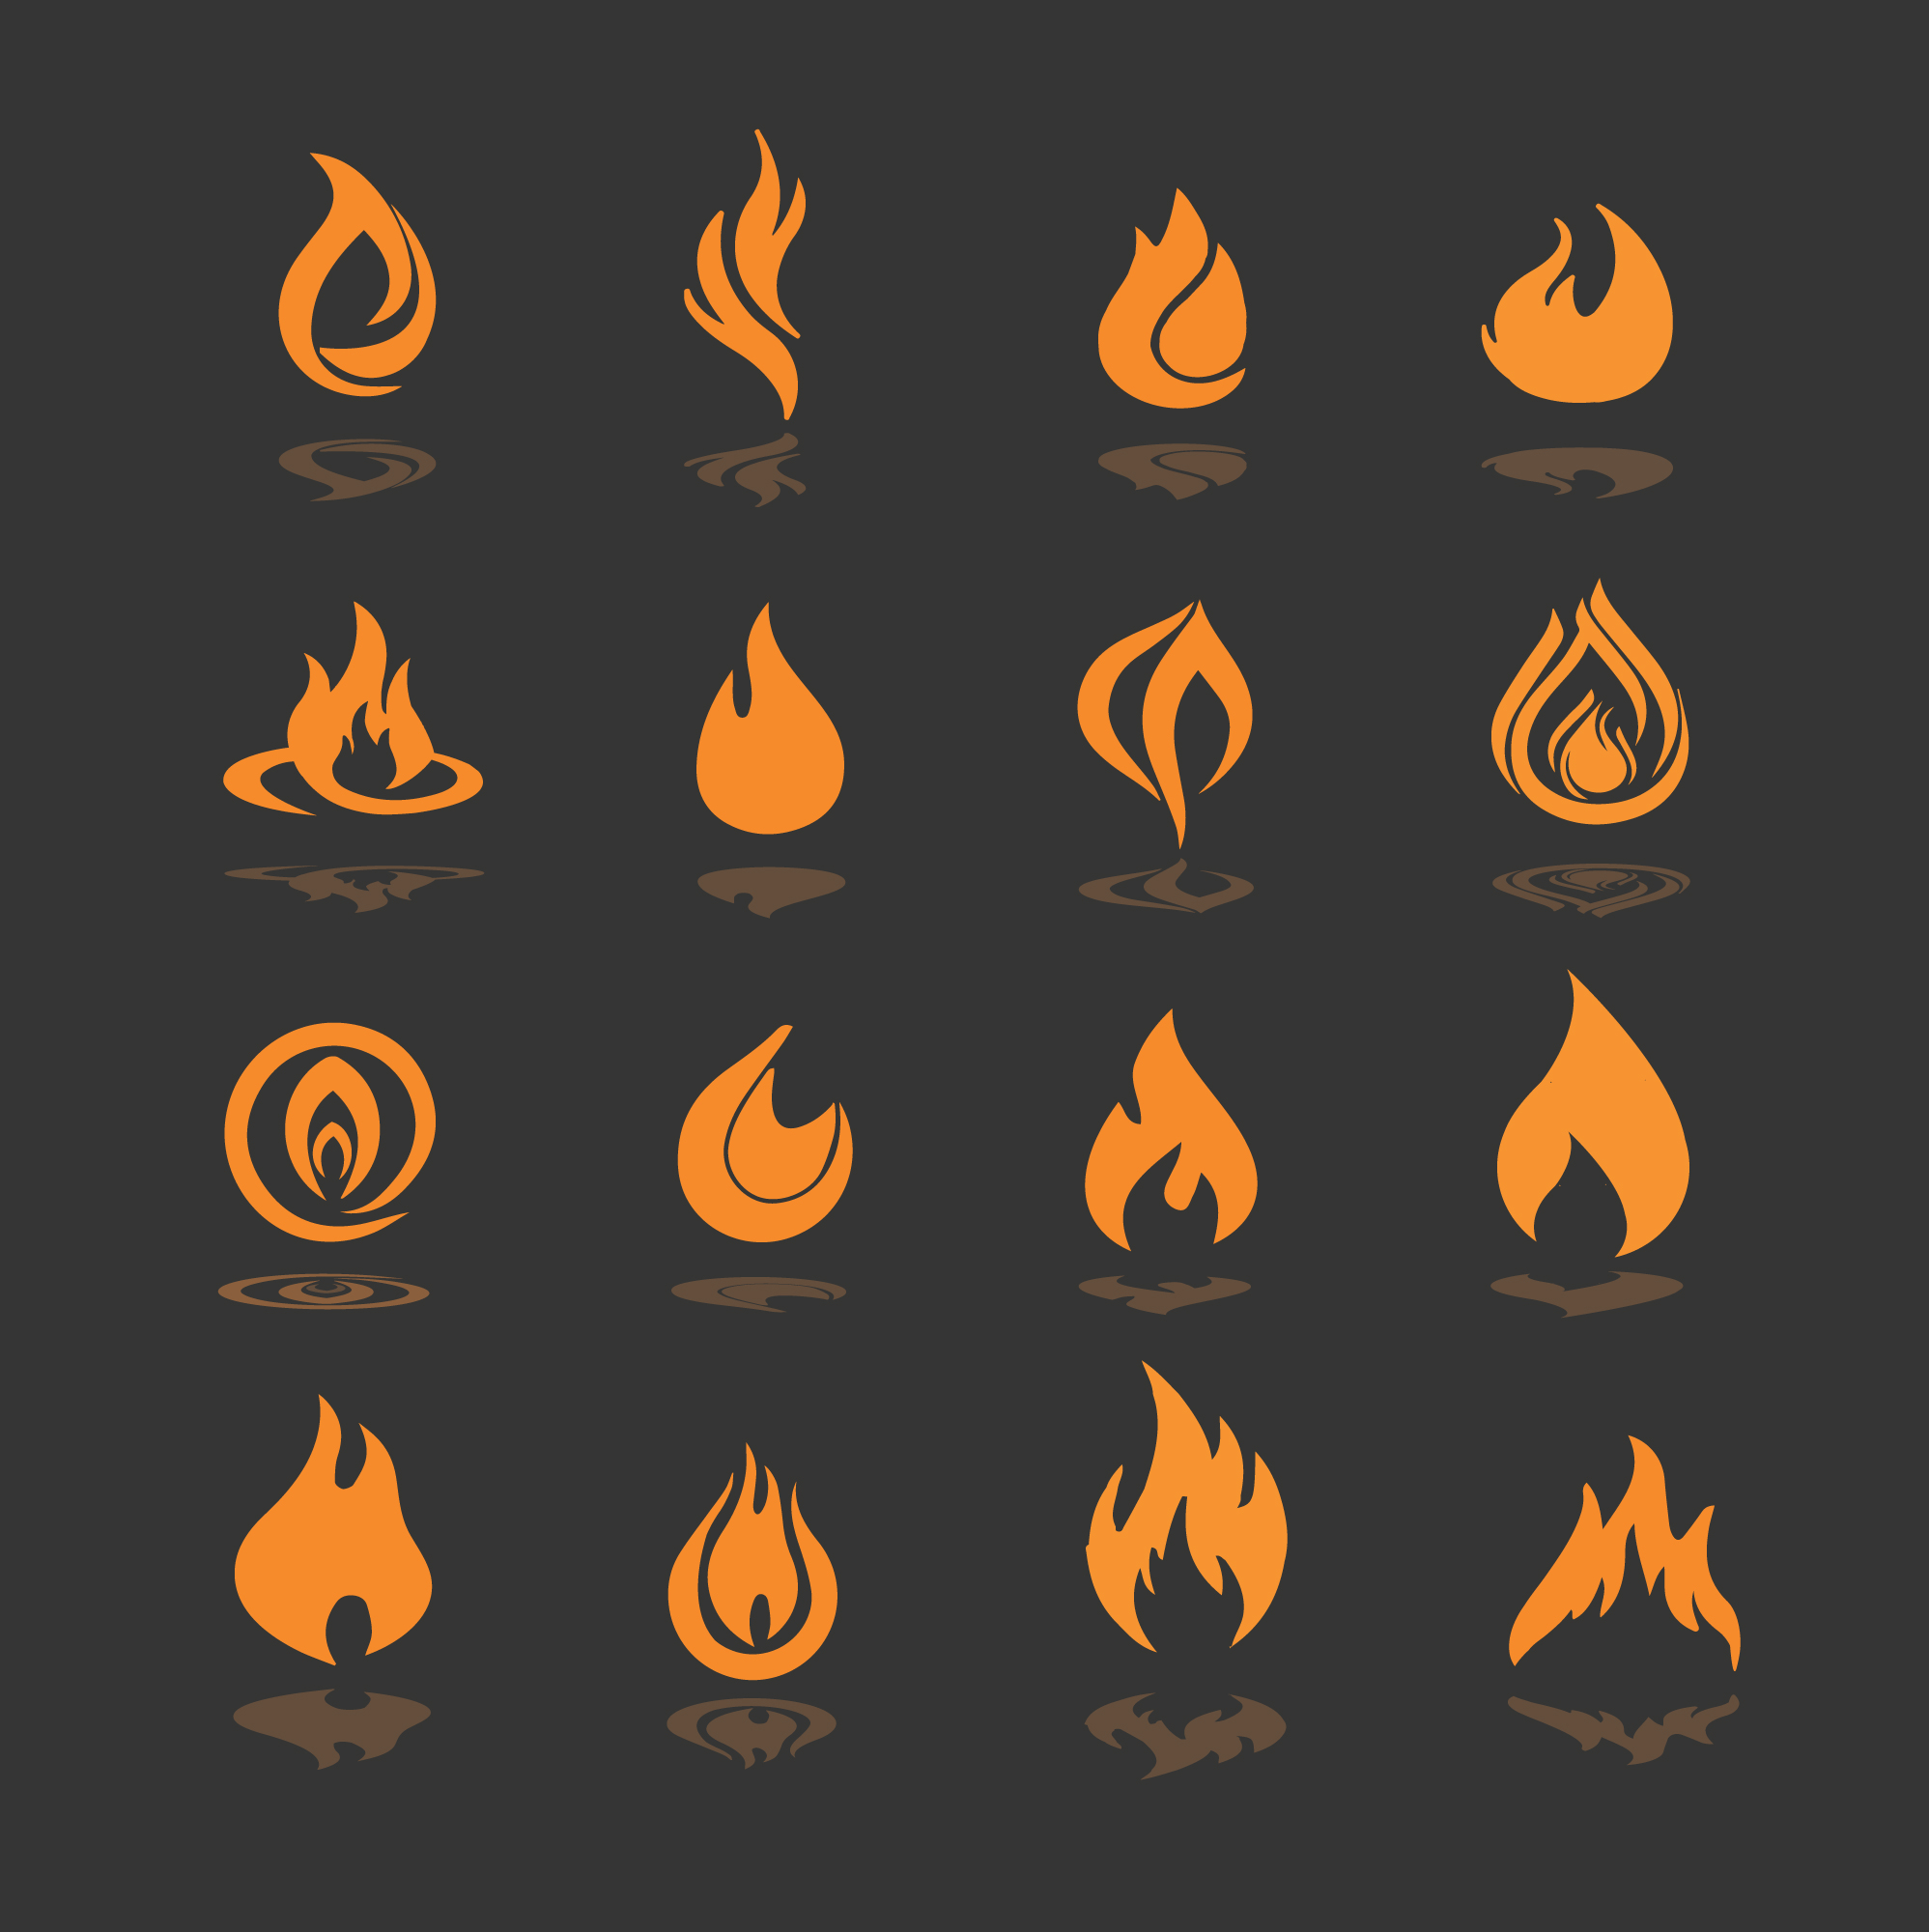 Fire icons collection